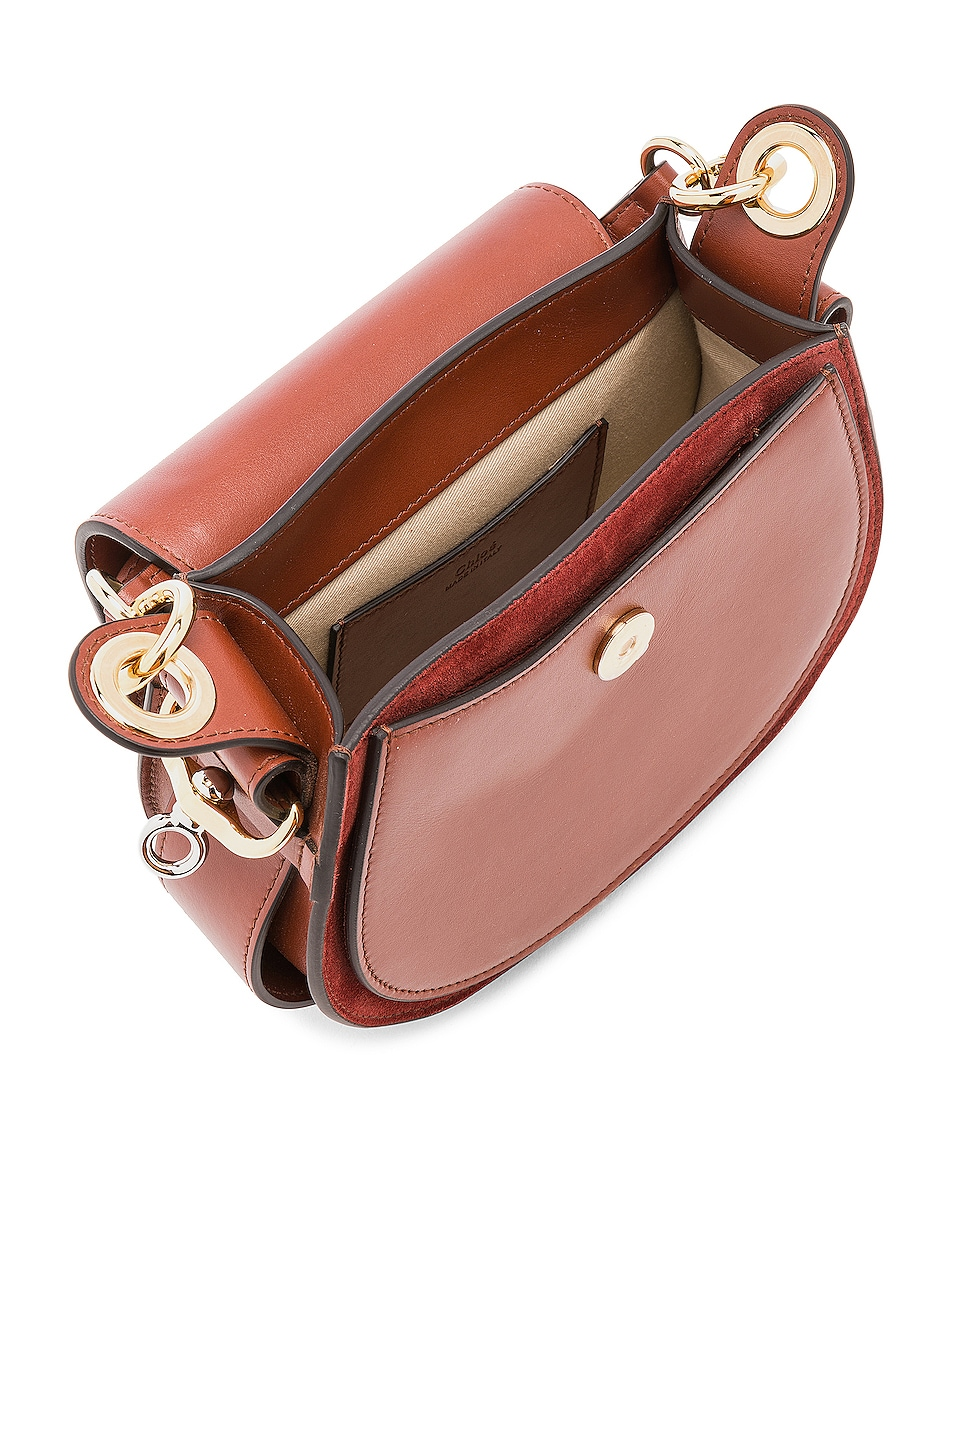 Image 5 of Chloe Small Tess Shiny Calfskin Shoulder Bag in Sepia Brown